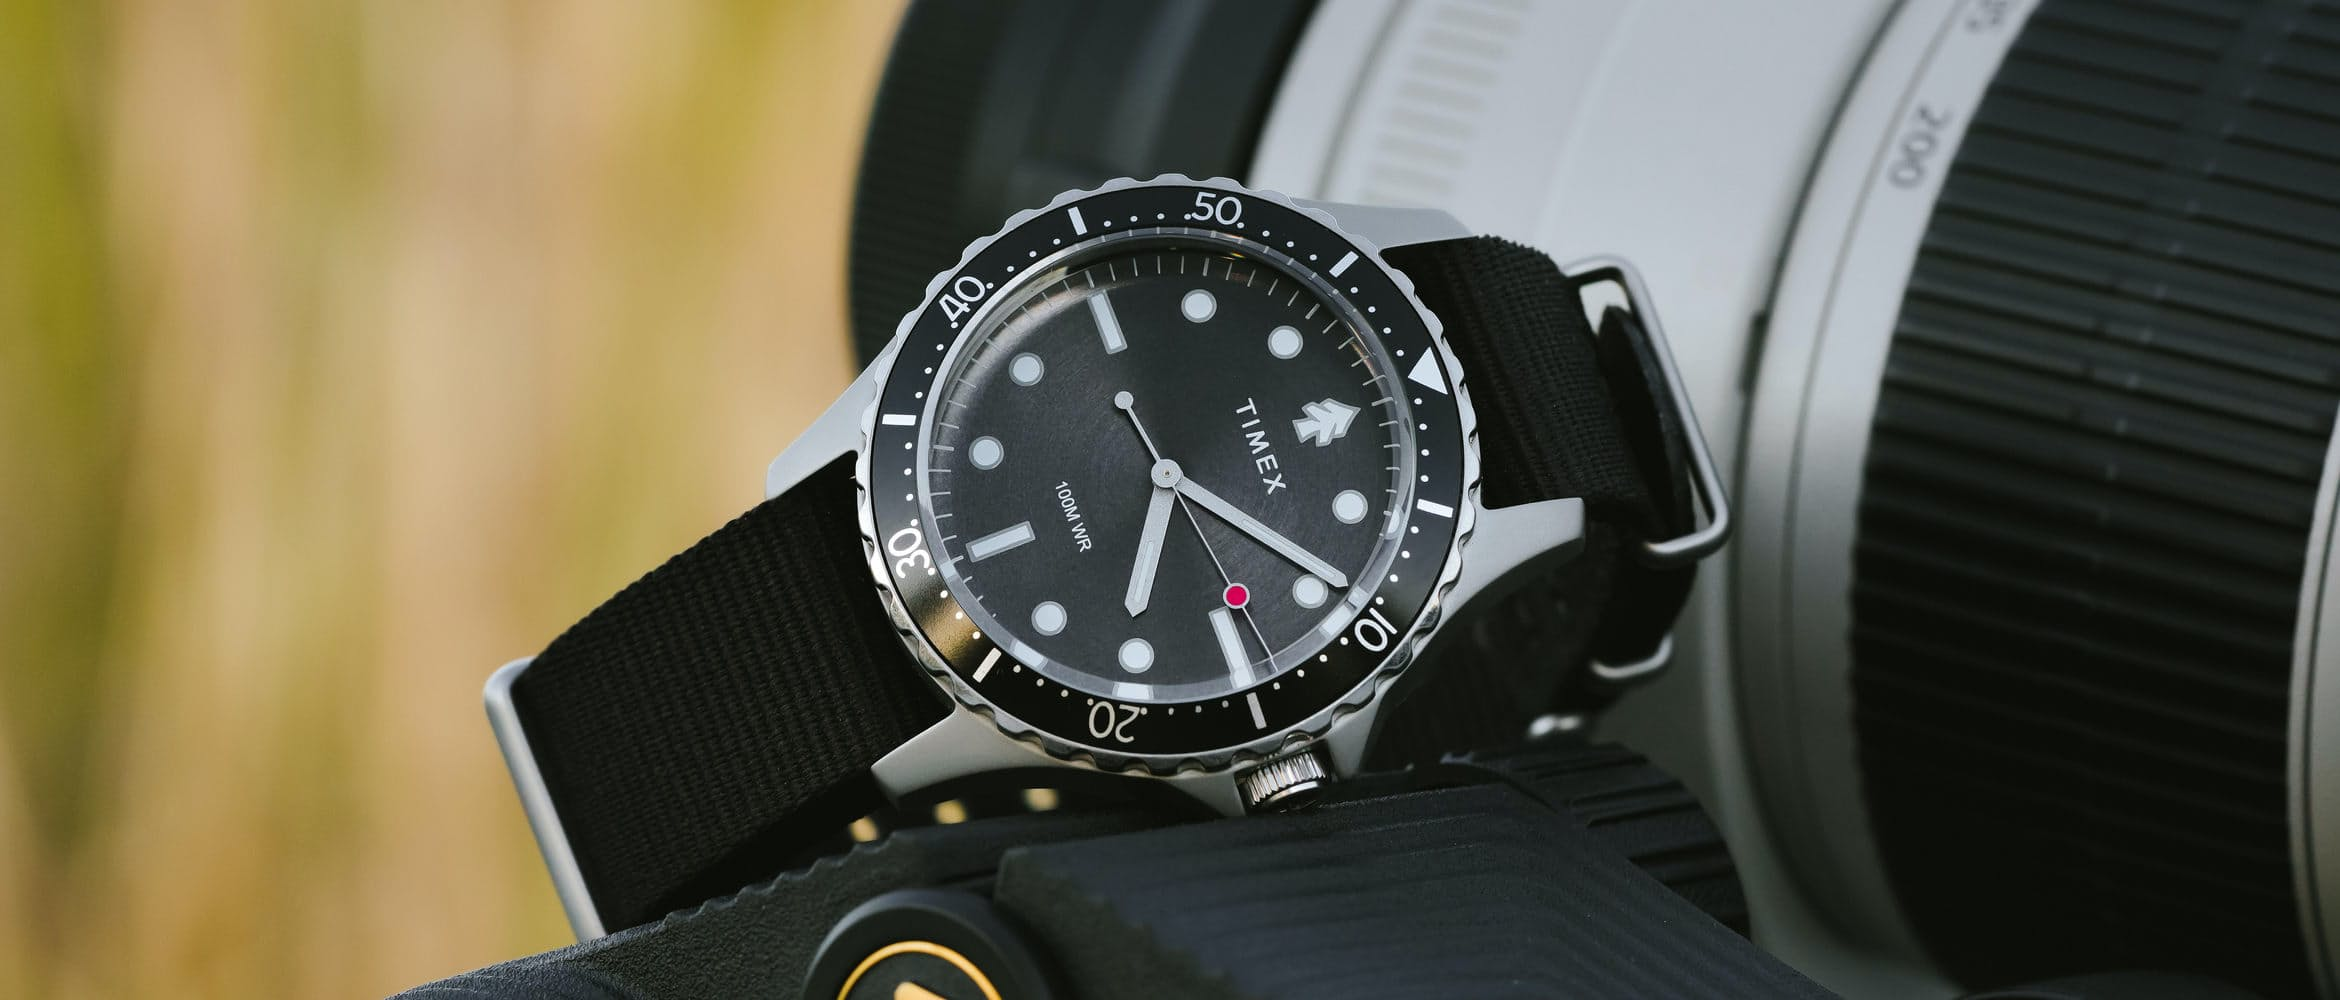 Featured 2x timex x huckberry diver.jpg?ixlib=rails 2.1